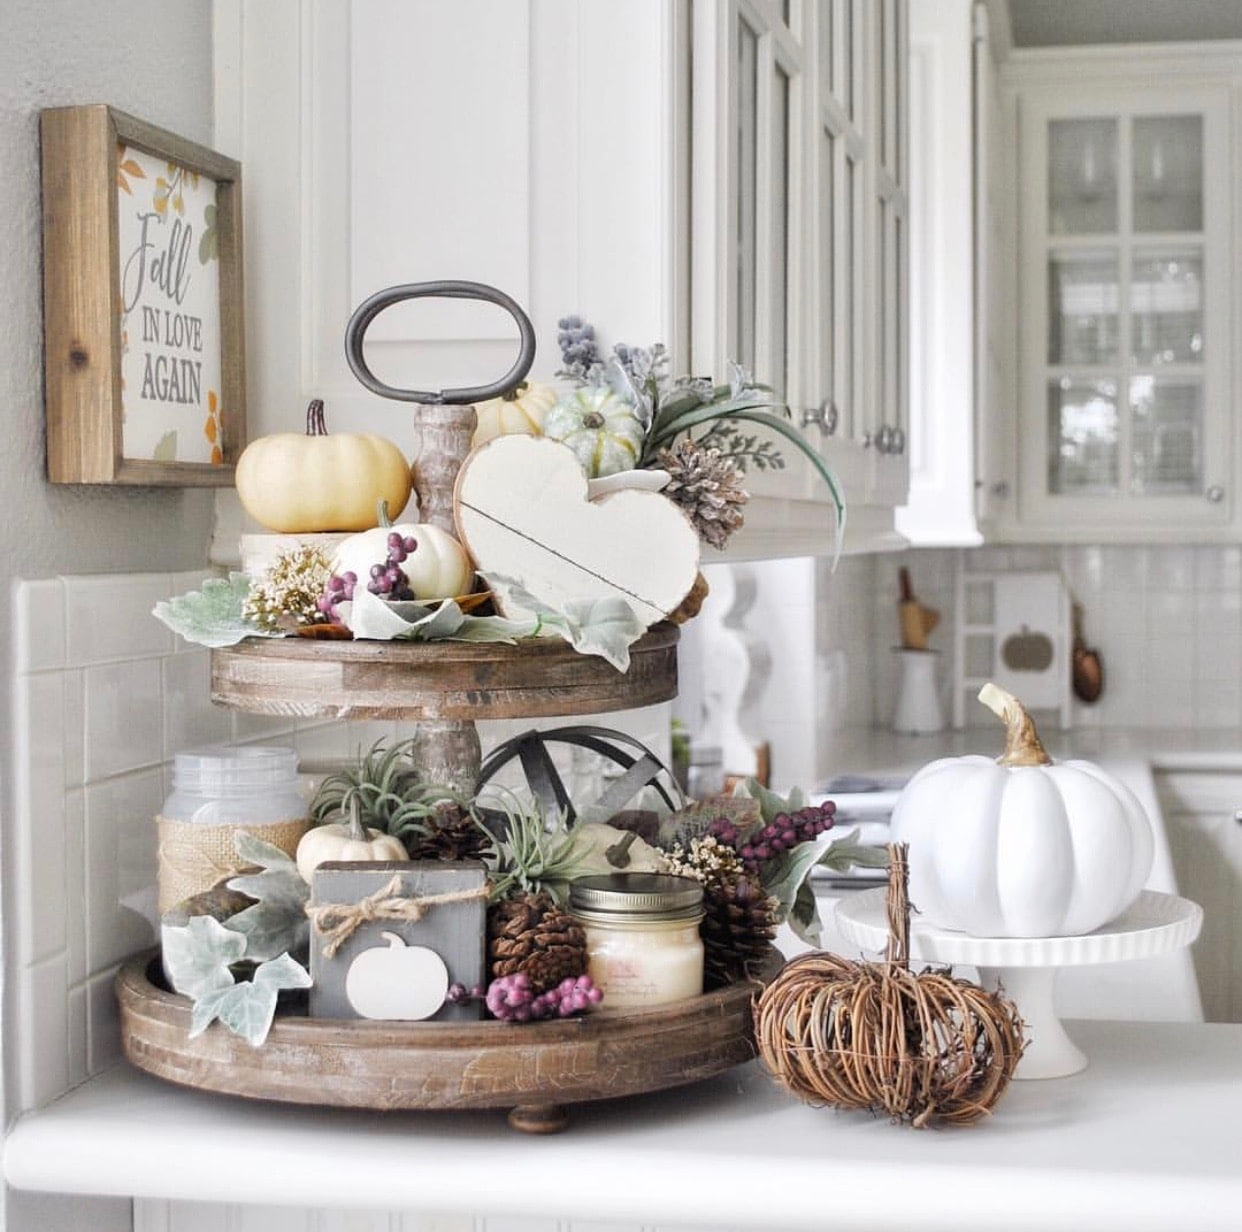 Decor Tips: SHOW STOPPING TIERED TRAYS FOR YOUR FALL DECOR